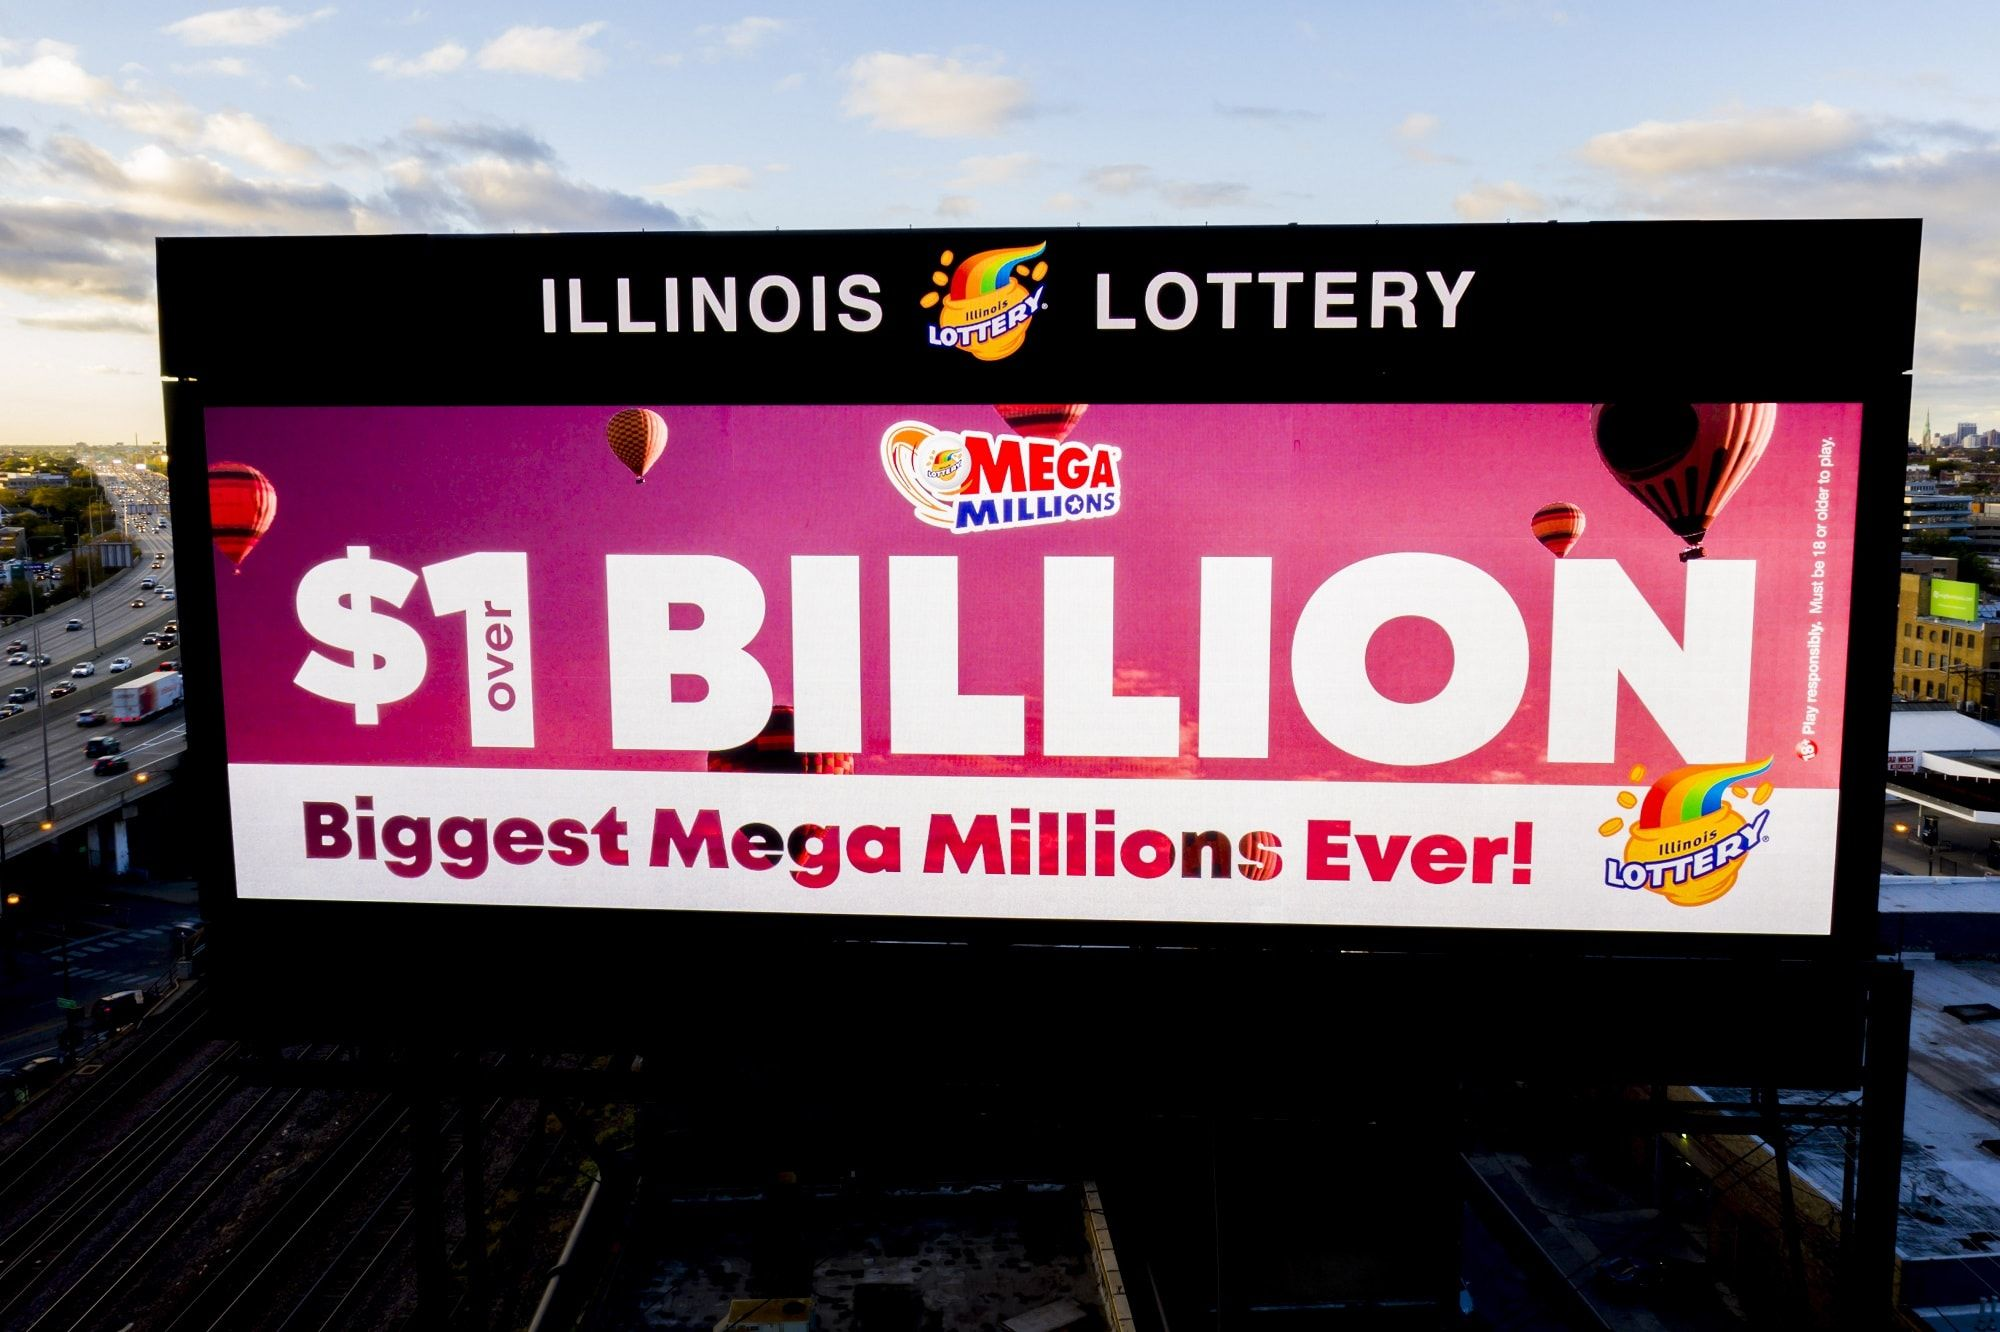 Mega millions finally sold a winning lottery ticket for